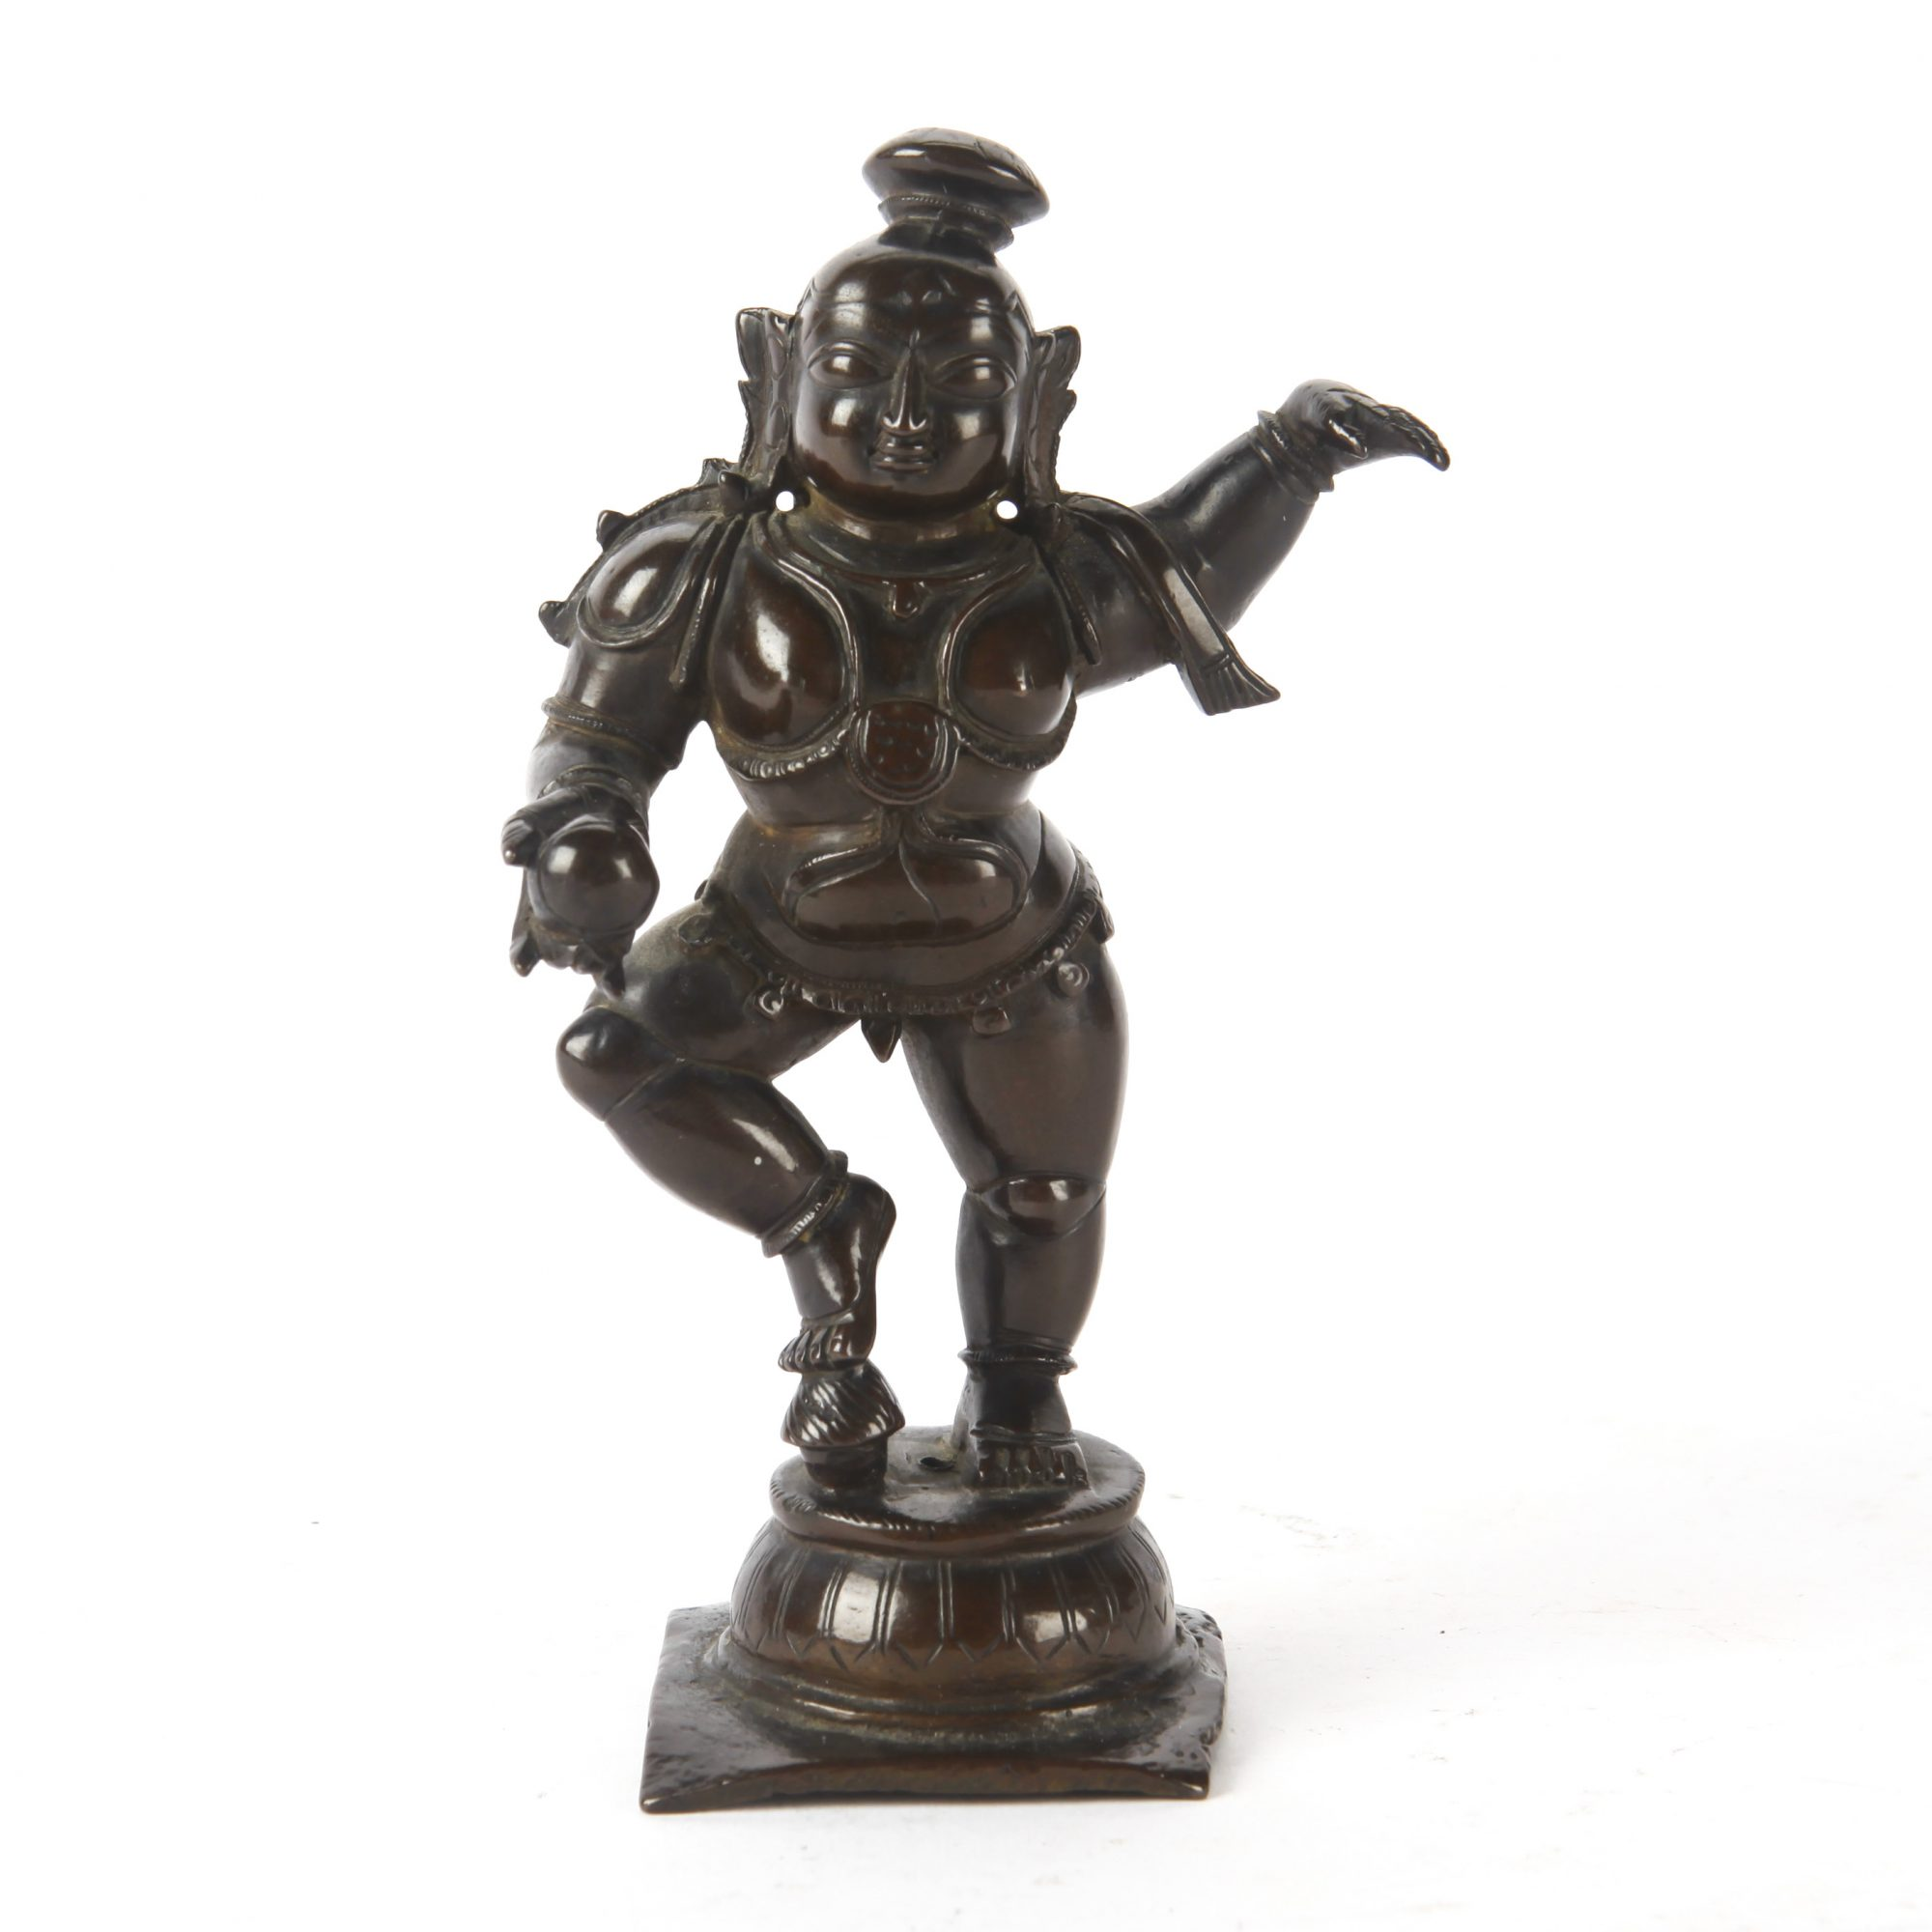 17TH CENTURY COPPER ALLOY BABY KRISHNA, NAYAK DYNASTY